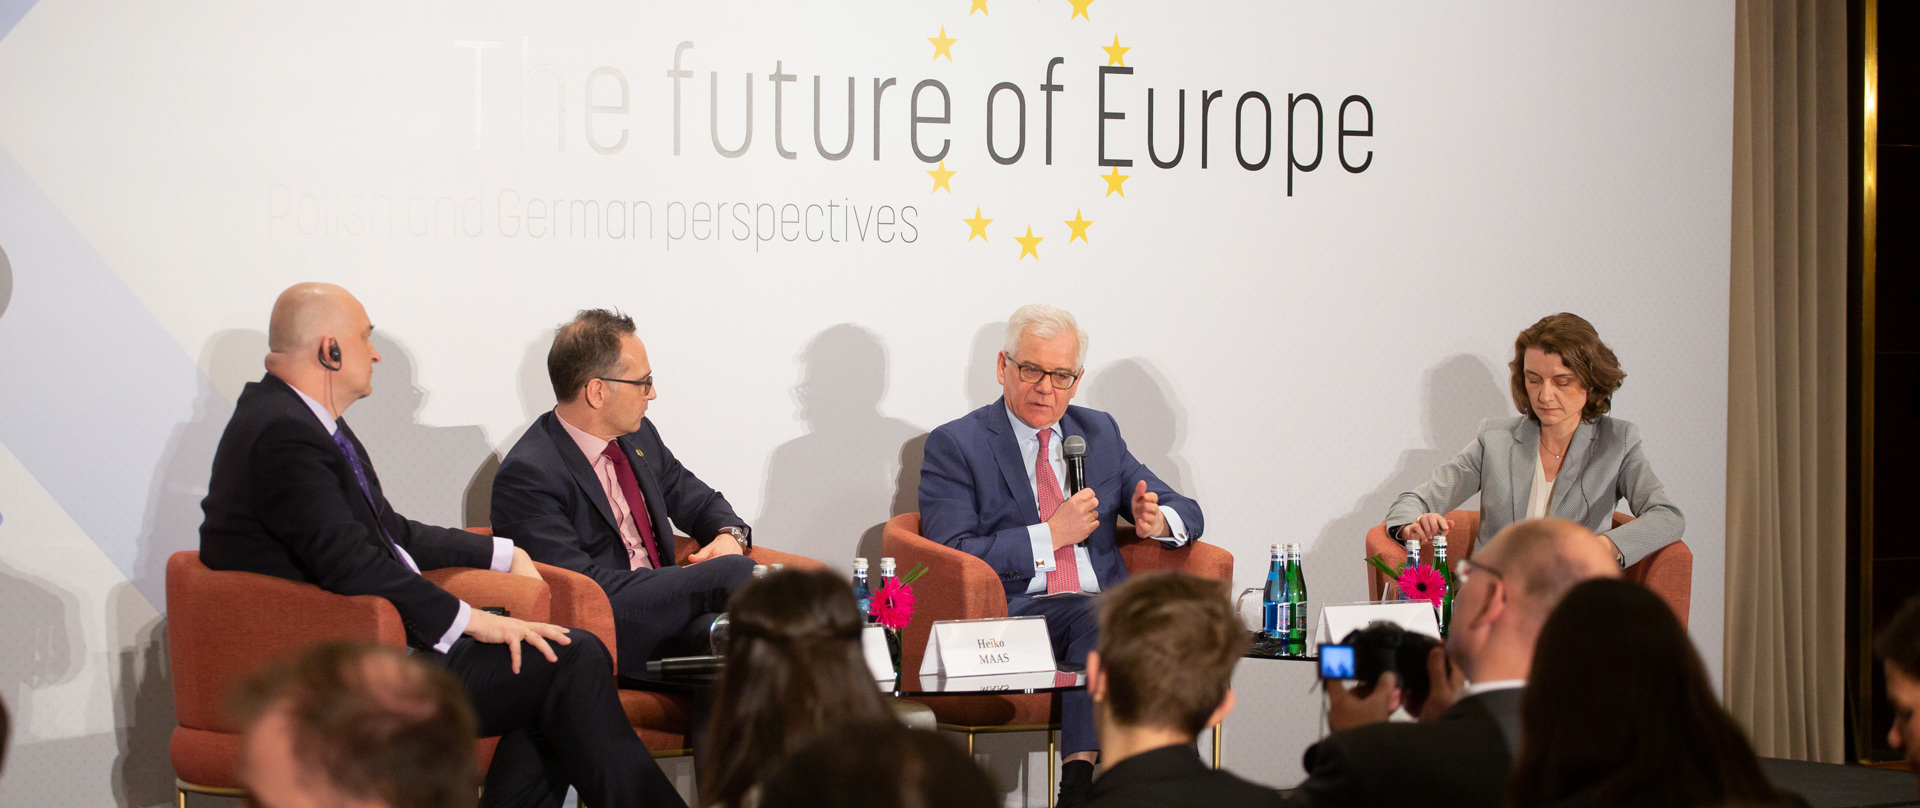 The future of Europe debate